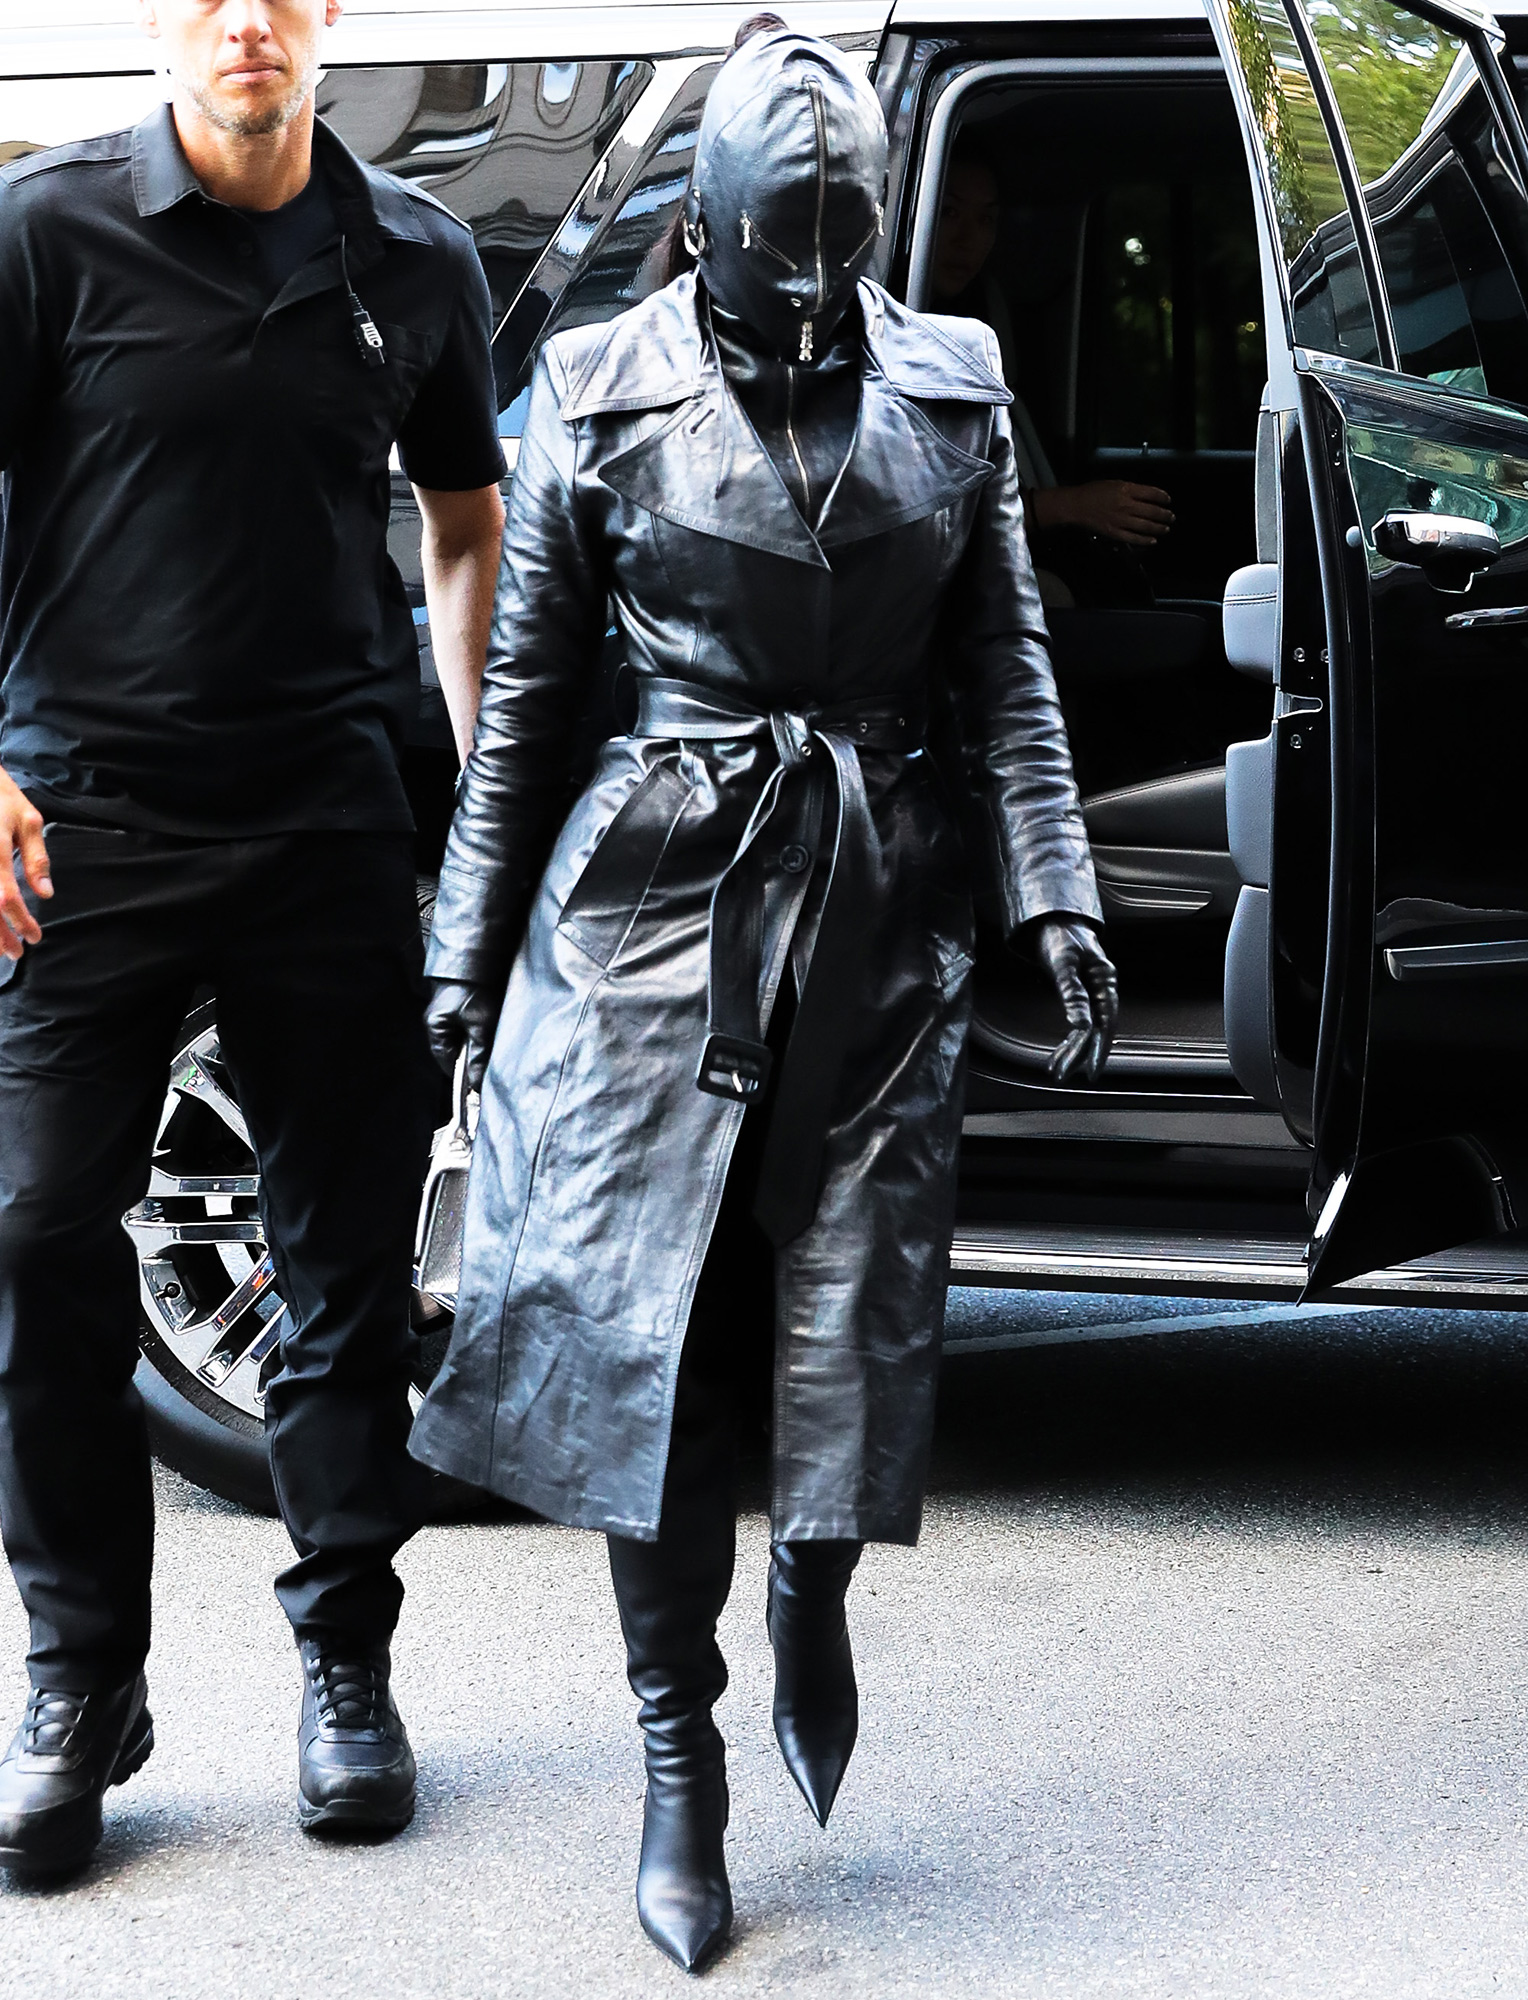 Kim Kardashian Covered head to toe with a leather suit while arrives at her hotel in NYC. 11 Sep 2021